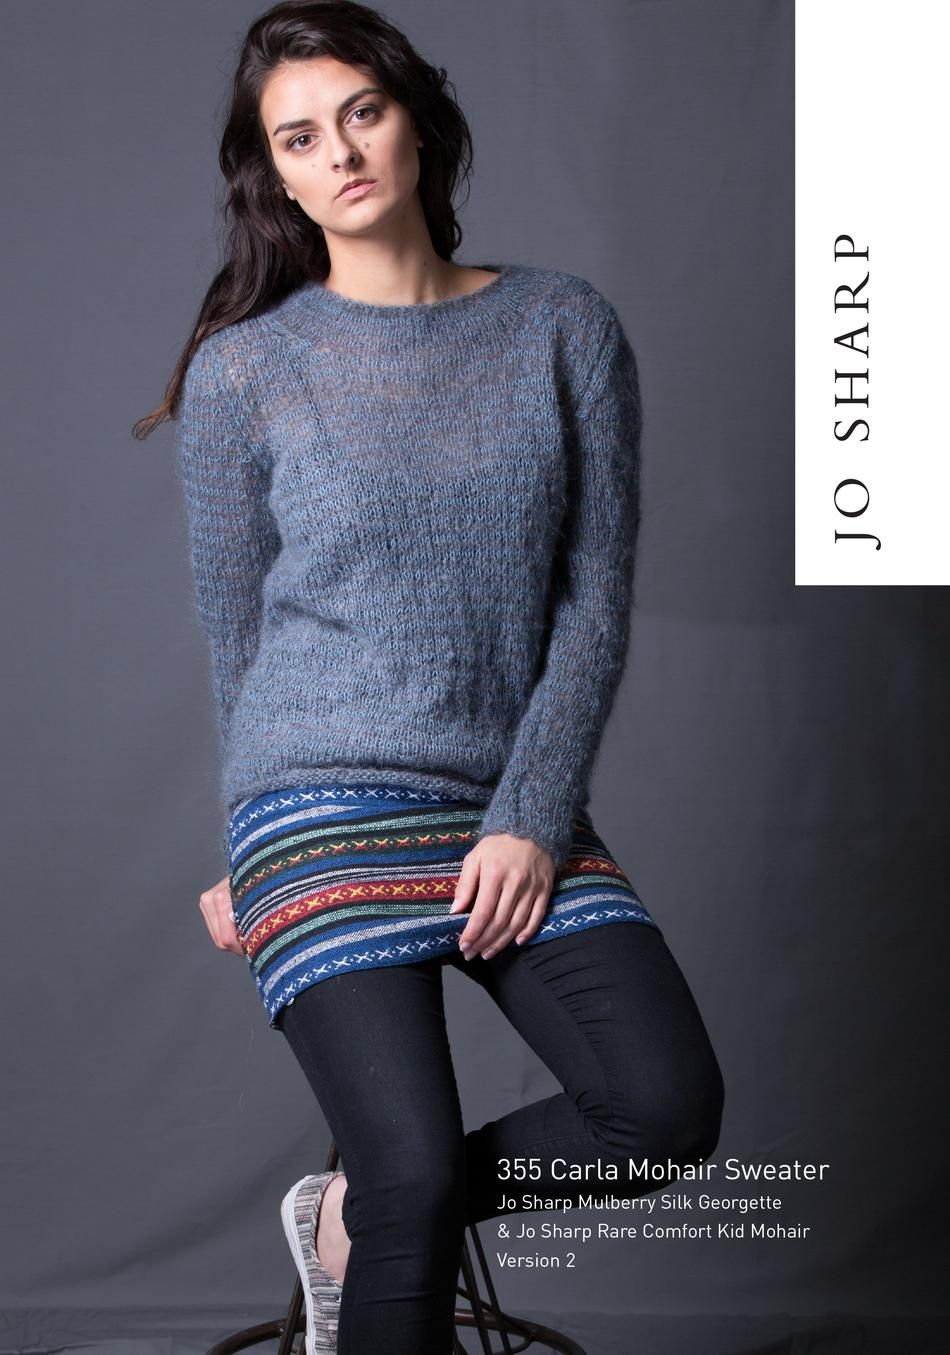 b3c04e483 30 Great Picture of Mohair Knitting Patterns Free Sweaters . Mohair  Knitting Patterns Free Sweaters Jo Sharp Carla Mohair Sweater Pattern  Download Knitting ...